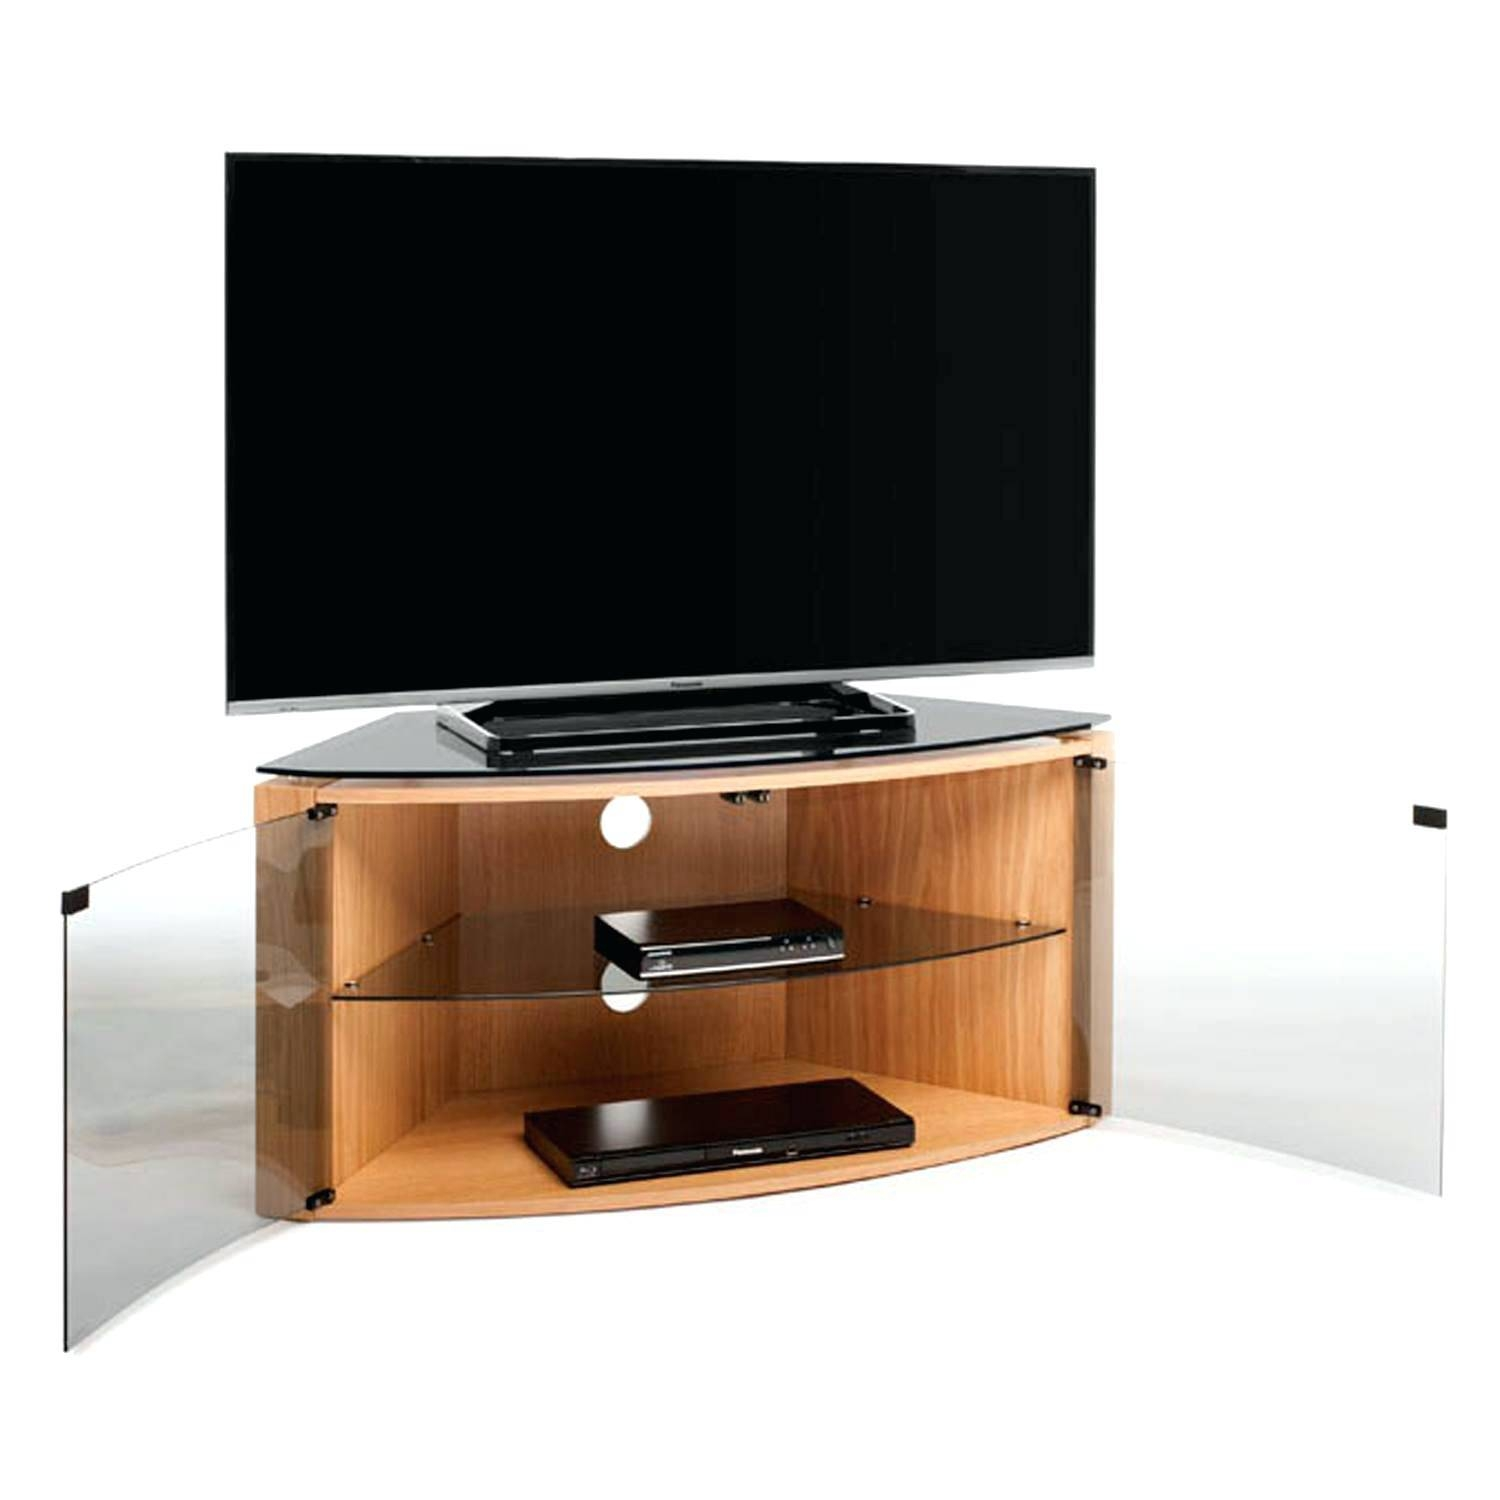 Tv Stand : Splendid Explore Ikea Tv Tv Bench And More Modern Tv throughout Techlink Bench Corner Tv Stands (Image 13 of 15)